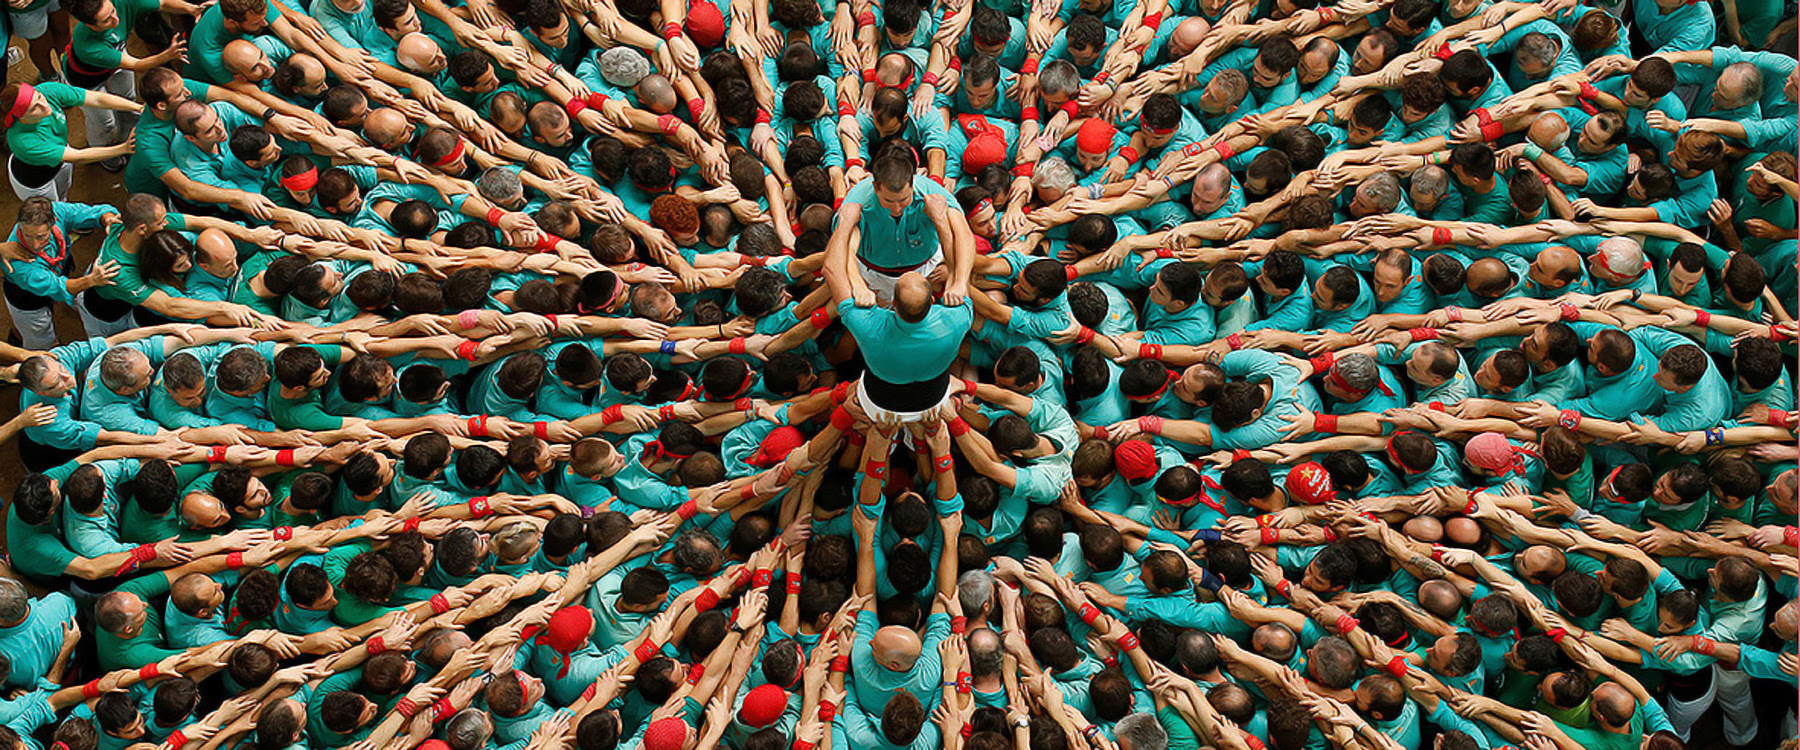 human towers pile up for the for the 26th concurs de castells in catalonia, spain